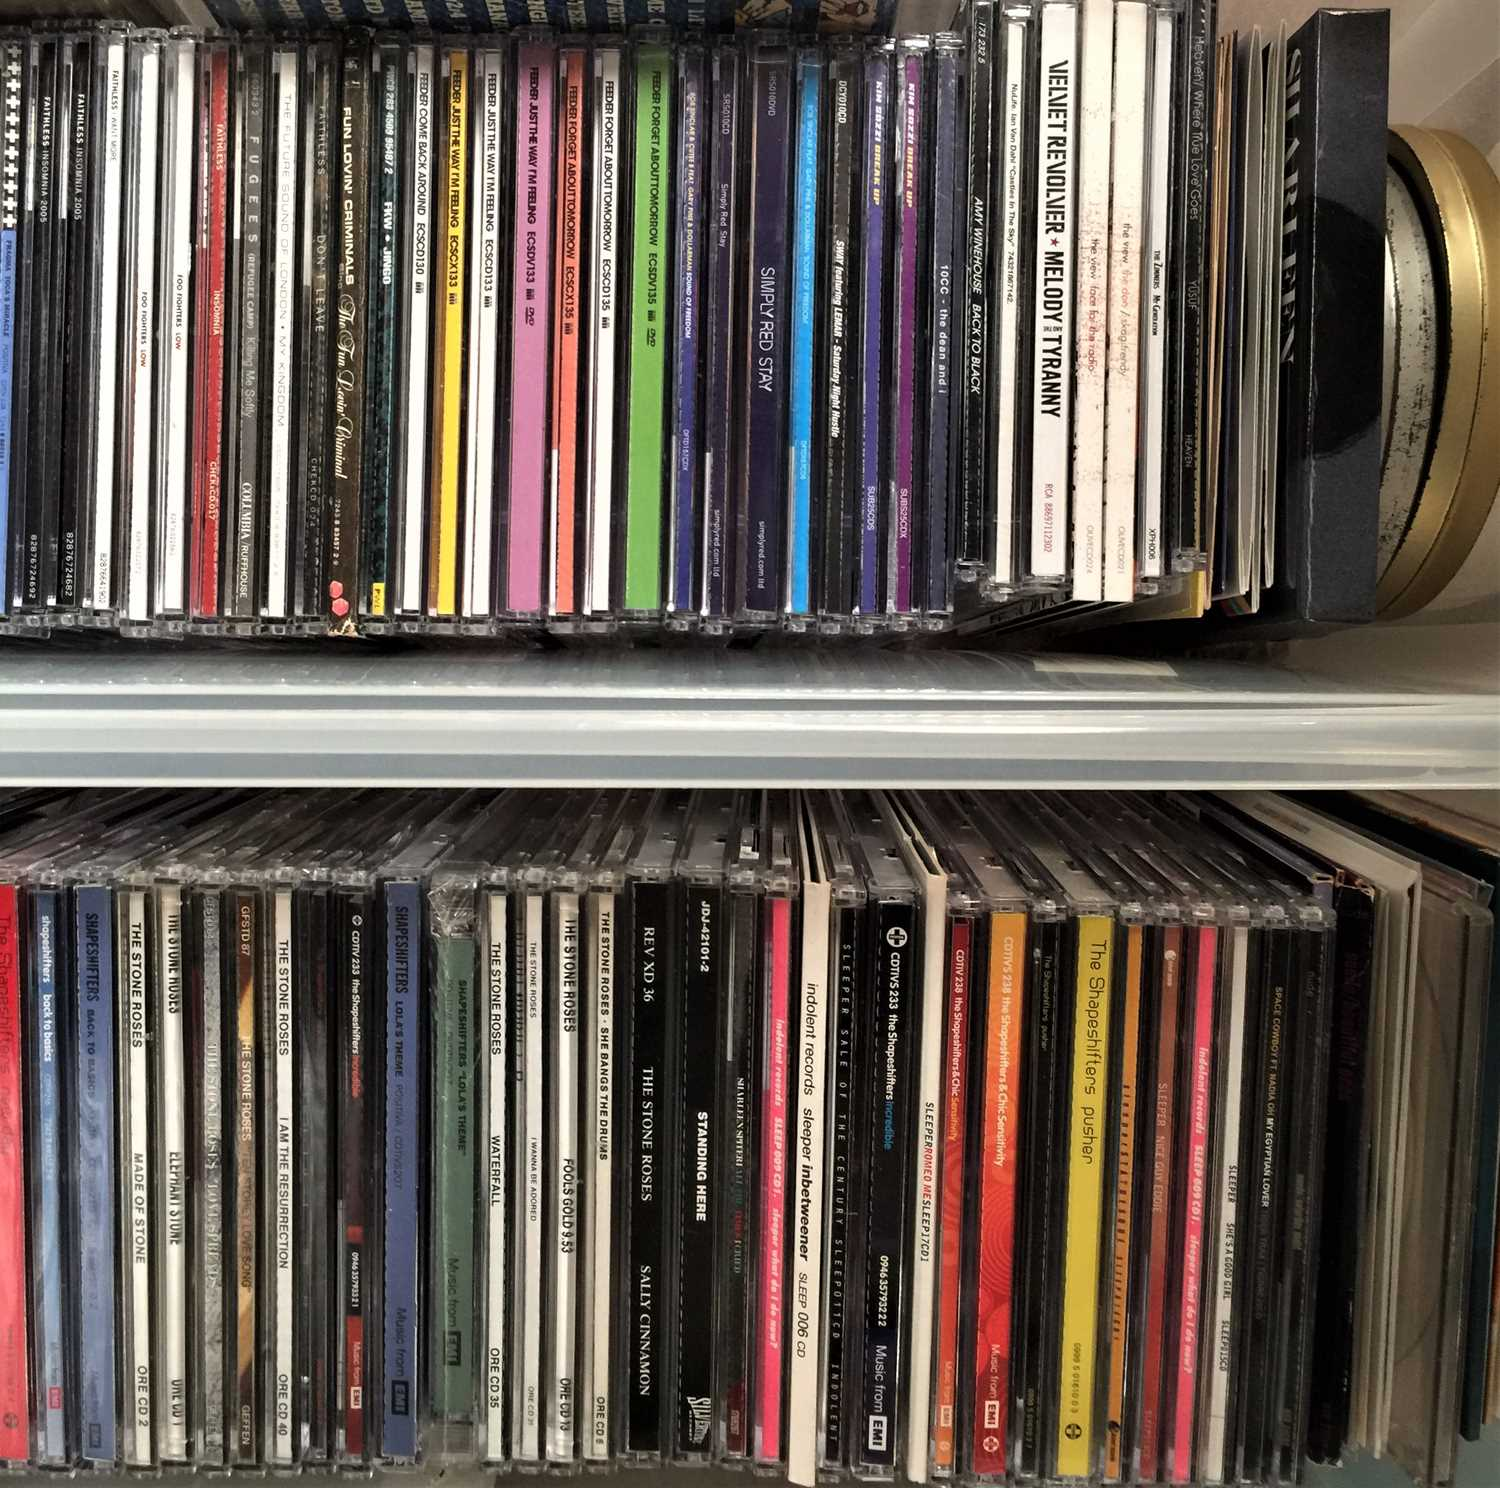 CD SINGLES - LARGE COLLECTION - Image 4 of 15